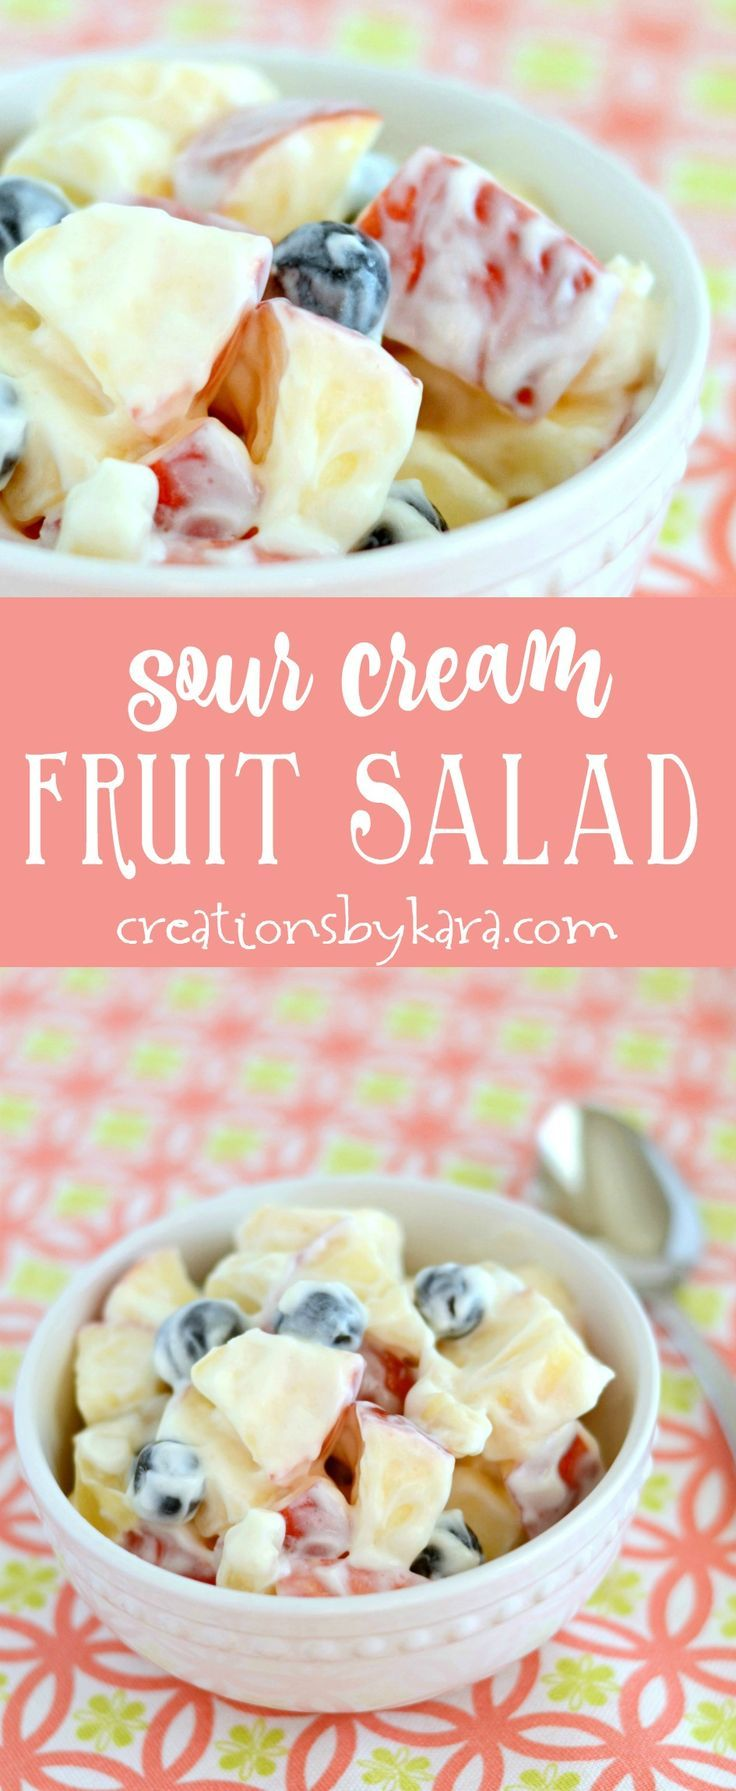 Easy and delicious, this Sour Cream Fruit Salad is always a hit. A tasty fruit salad recipe that can be whipped up in minutes. via creationsbykara.com